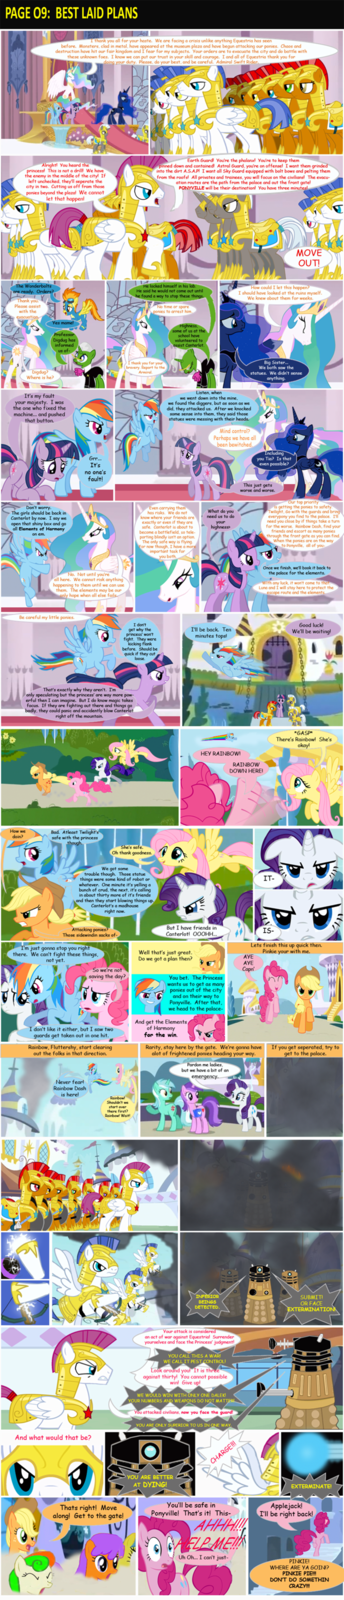 doctor_whooves__elder_page_09_by_shwiggityshwah-d4hzunk_resized.png